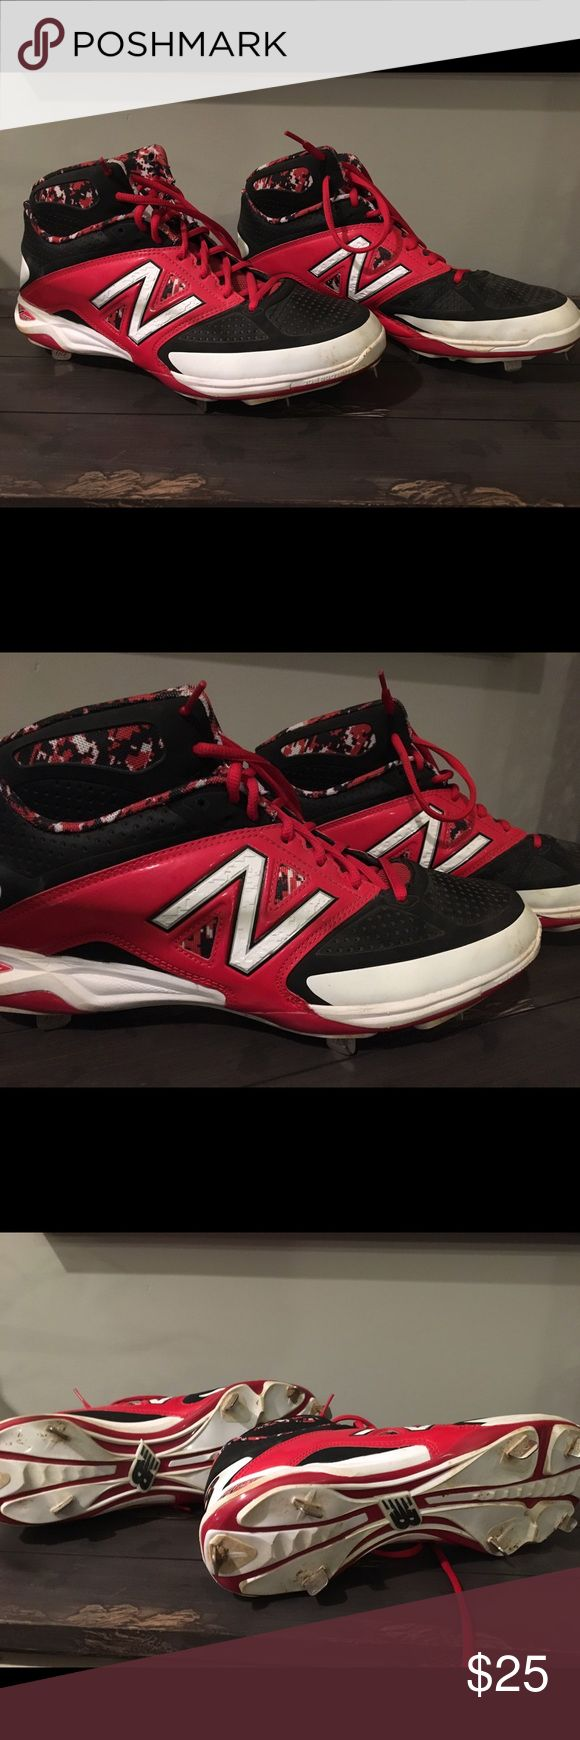 Red and black high top baseball metal cleats. High top metal baseball cleats in great condition! New Balance Shoes Athletic Shoes